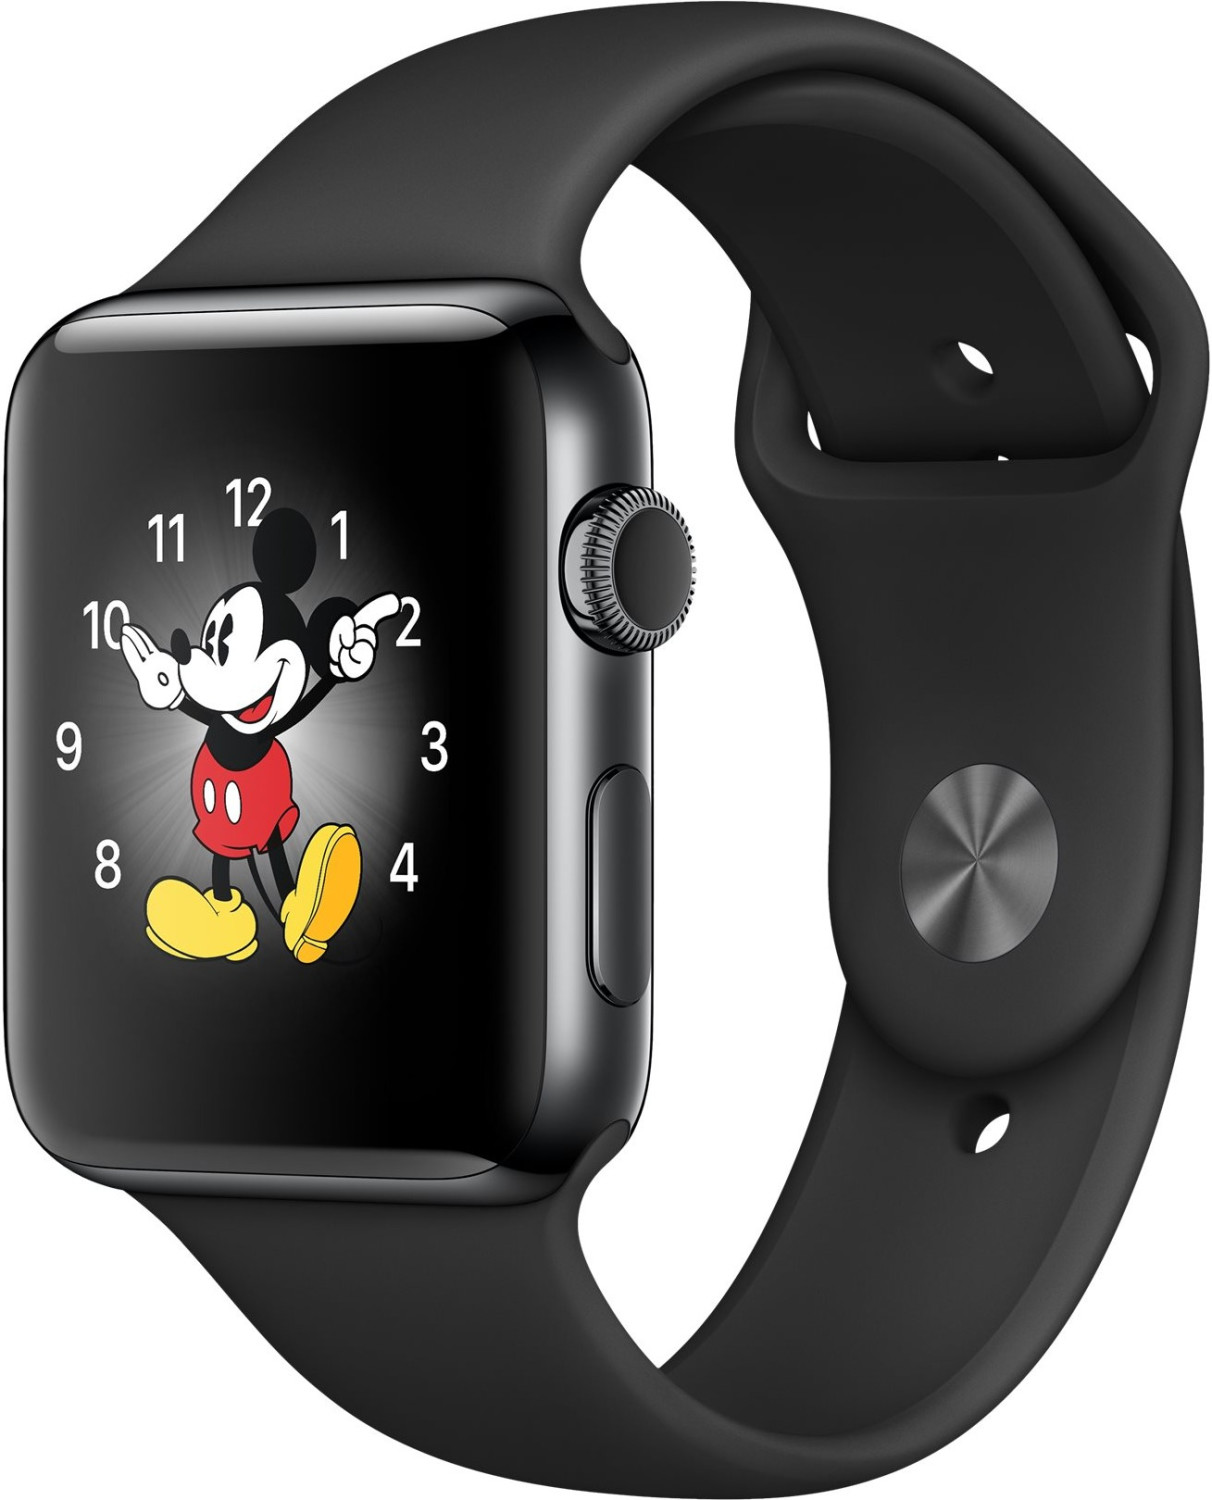 Apple Watch Series 2 38 mm acero negro espacial con correa deportiva negra